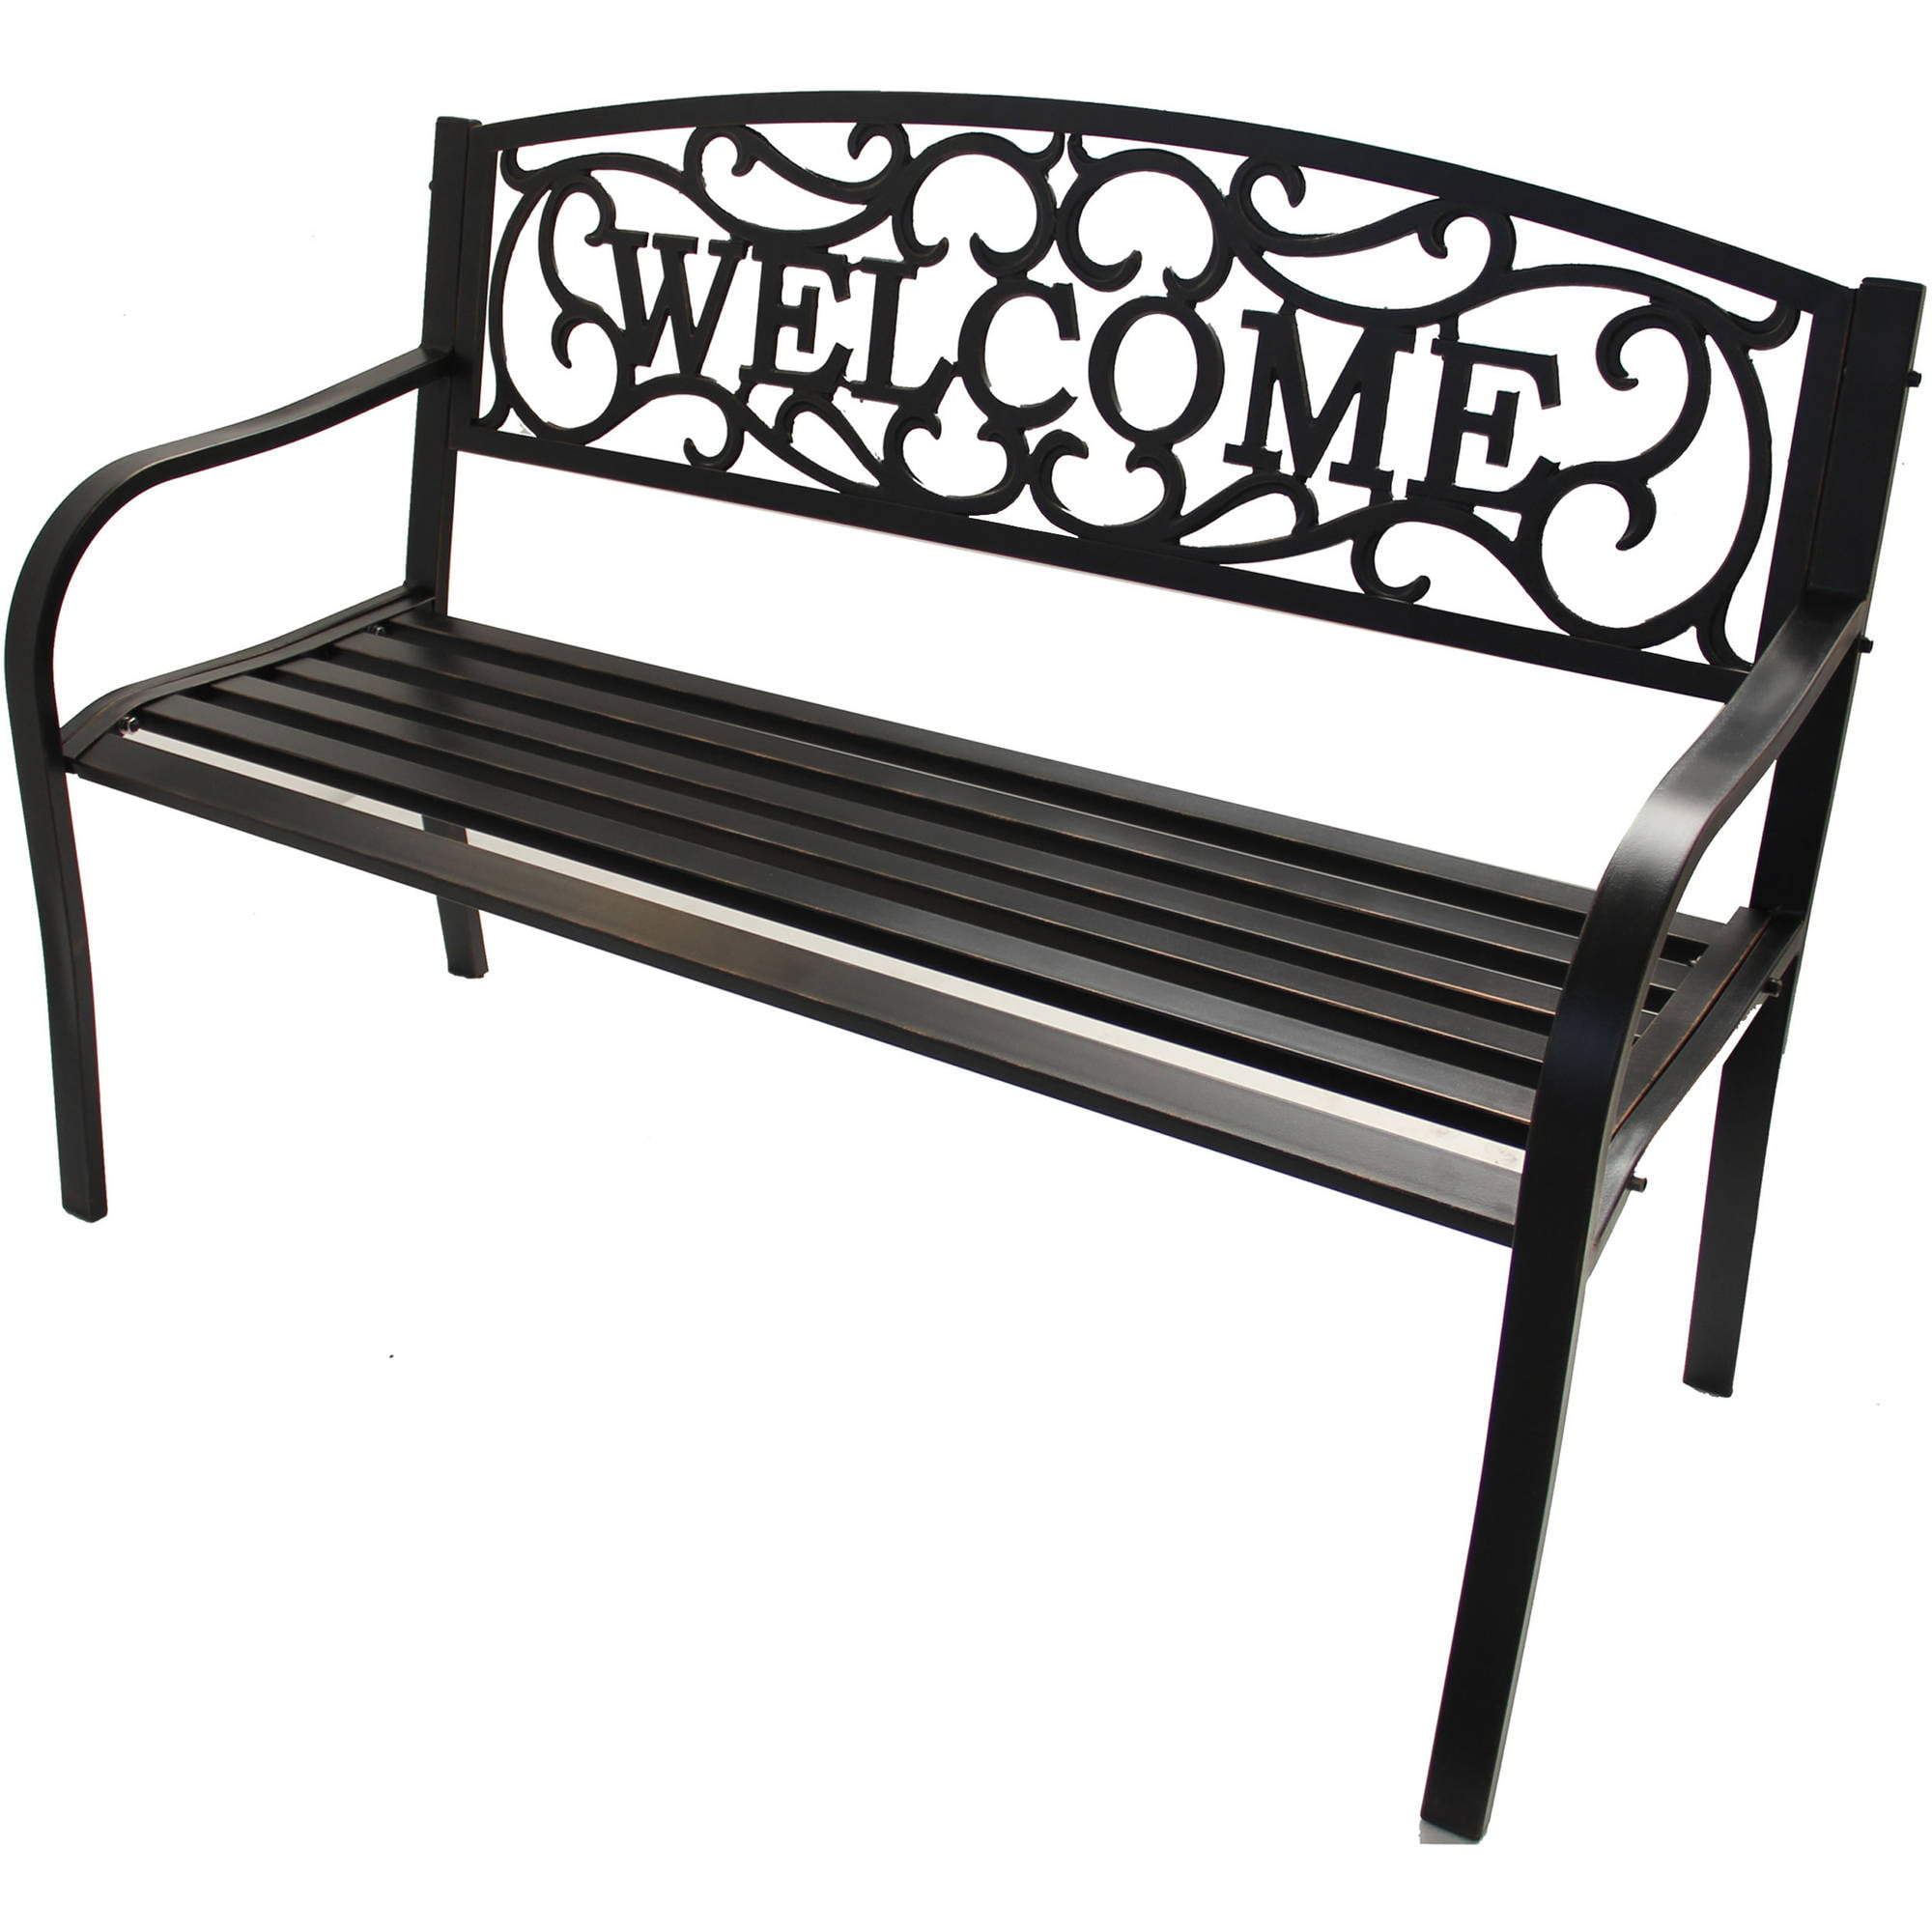 Better Homes & Gardens Welcome Outdoor Bench by Generic